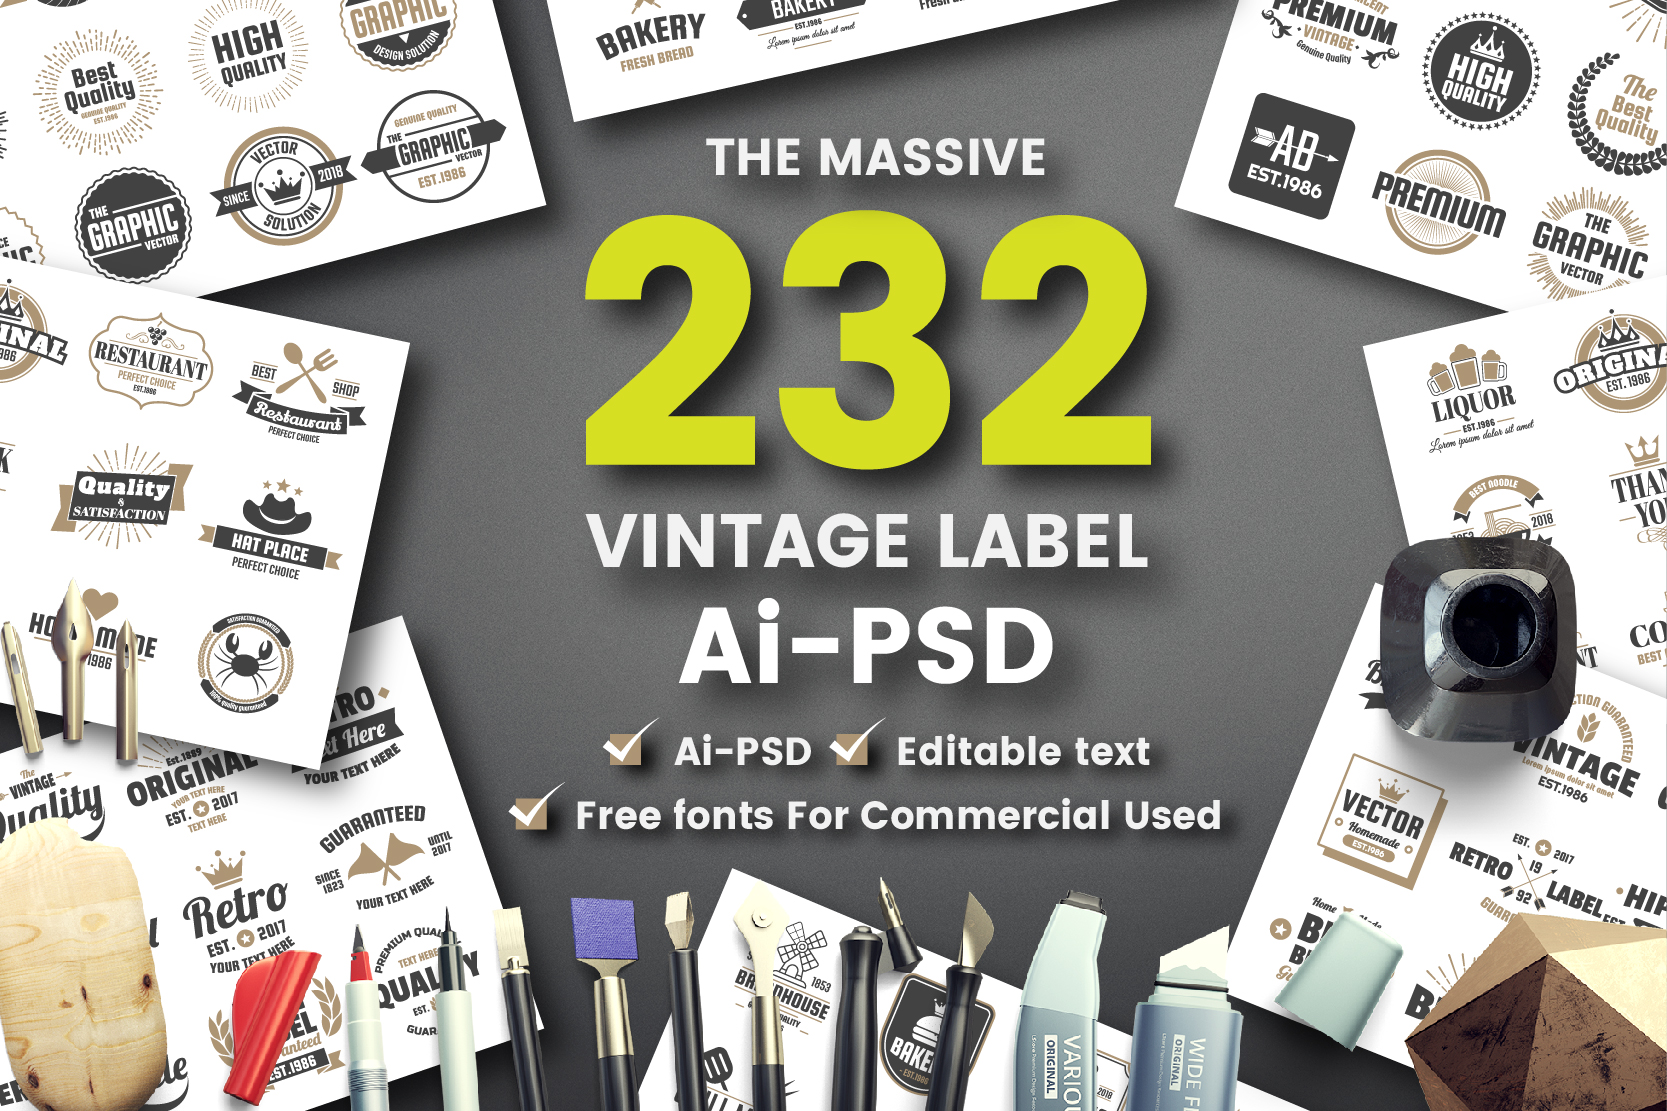 232 VINTAGE LABEL Graphic Logos By toonsteb